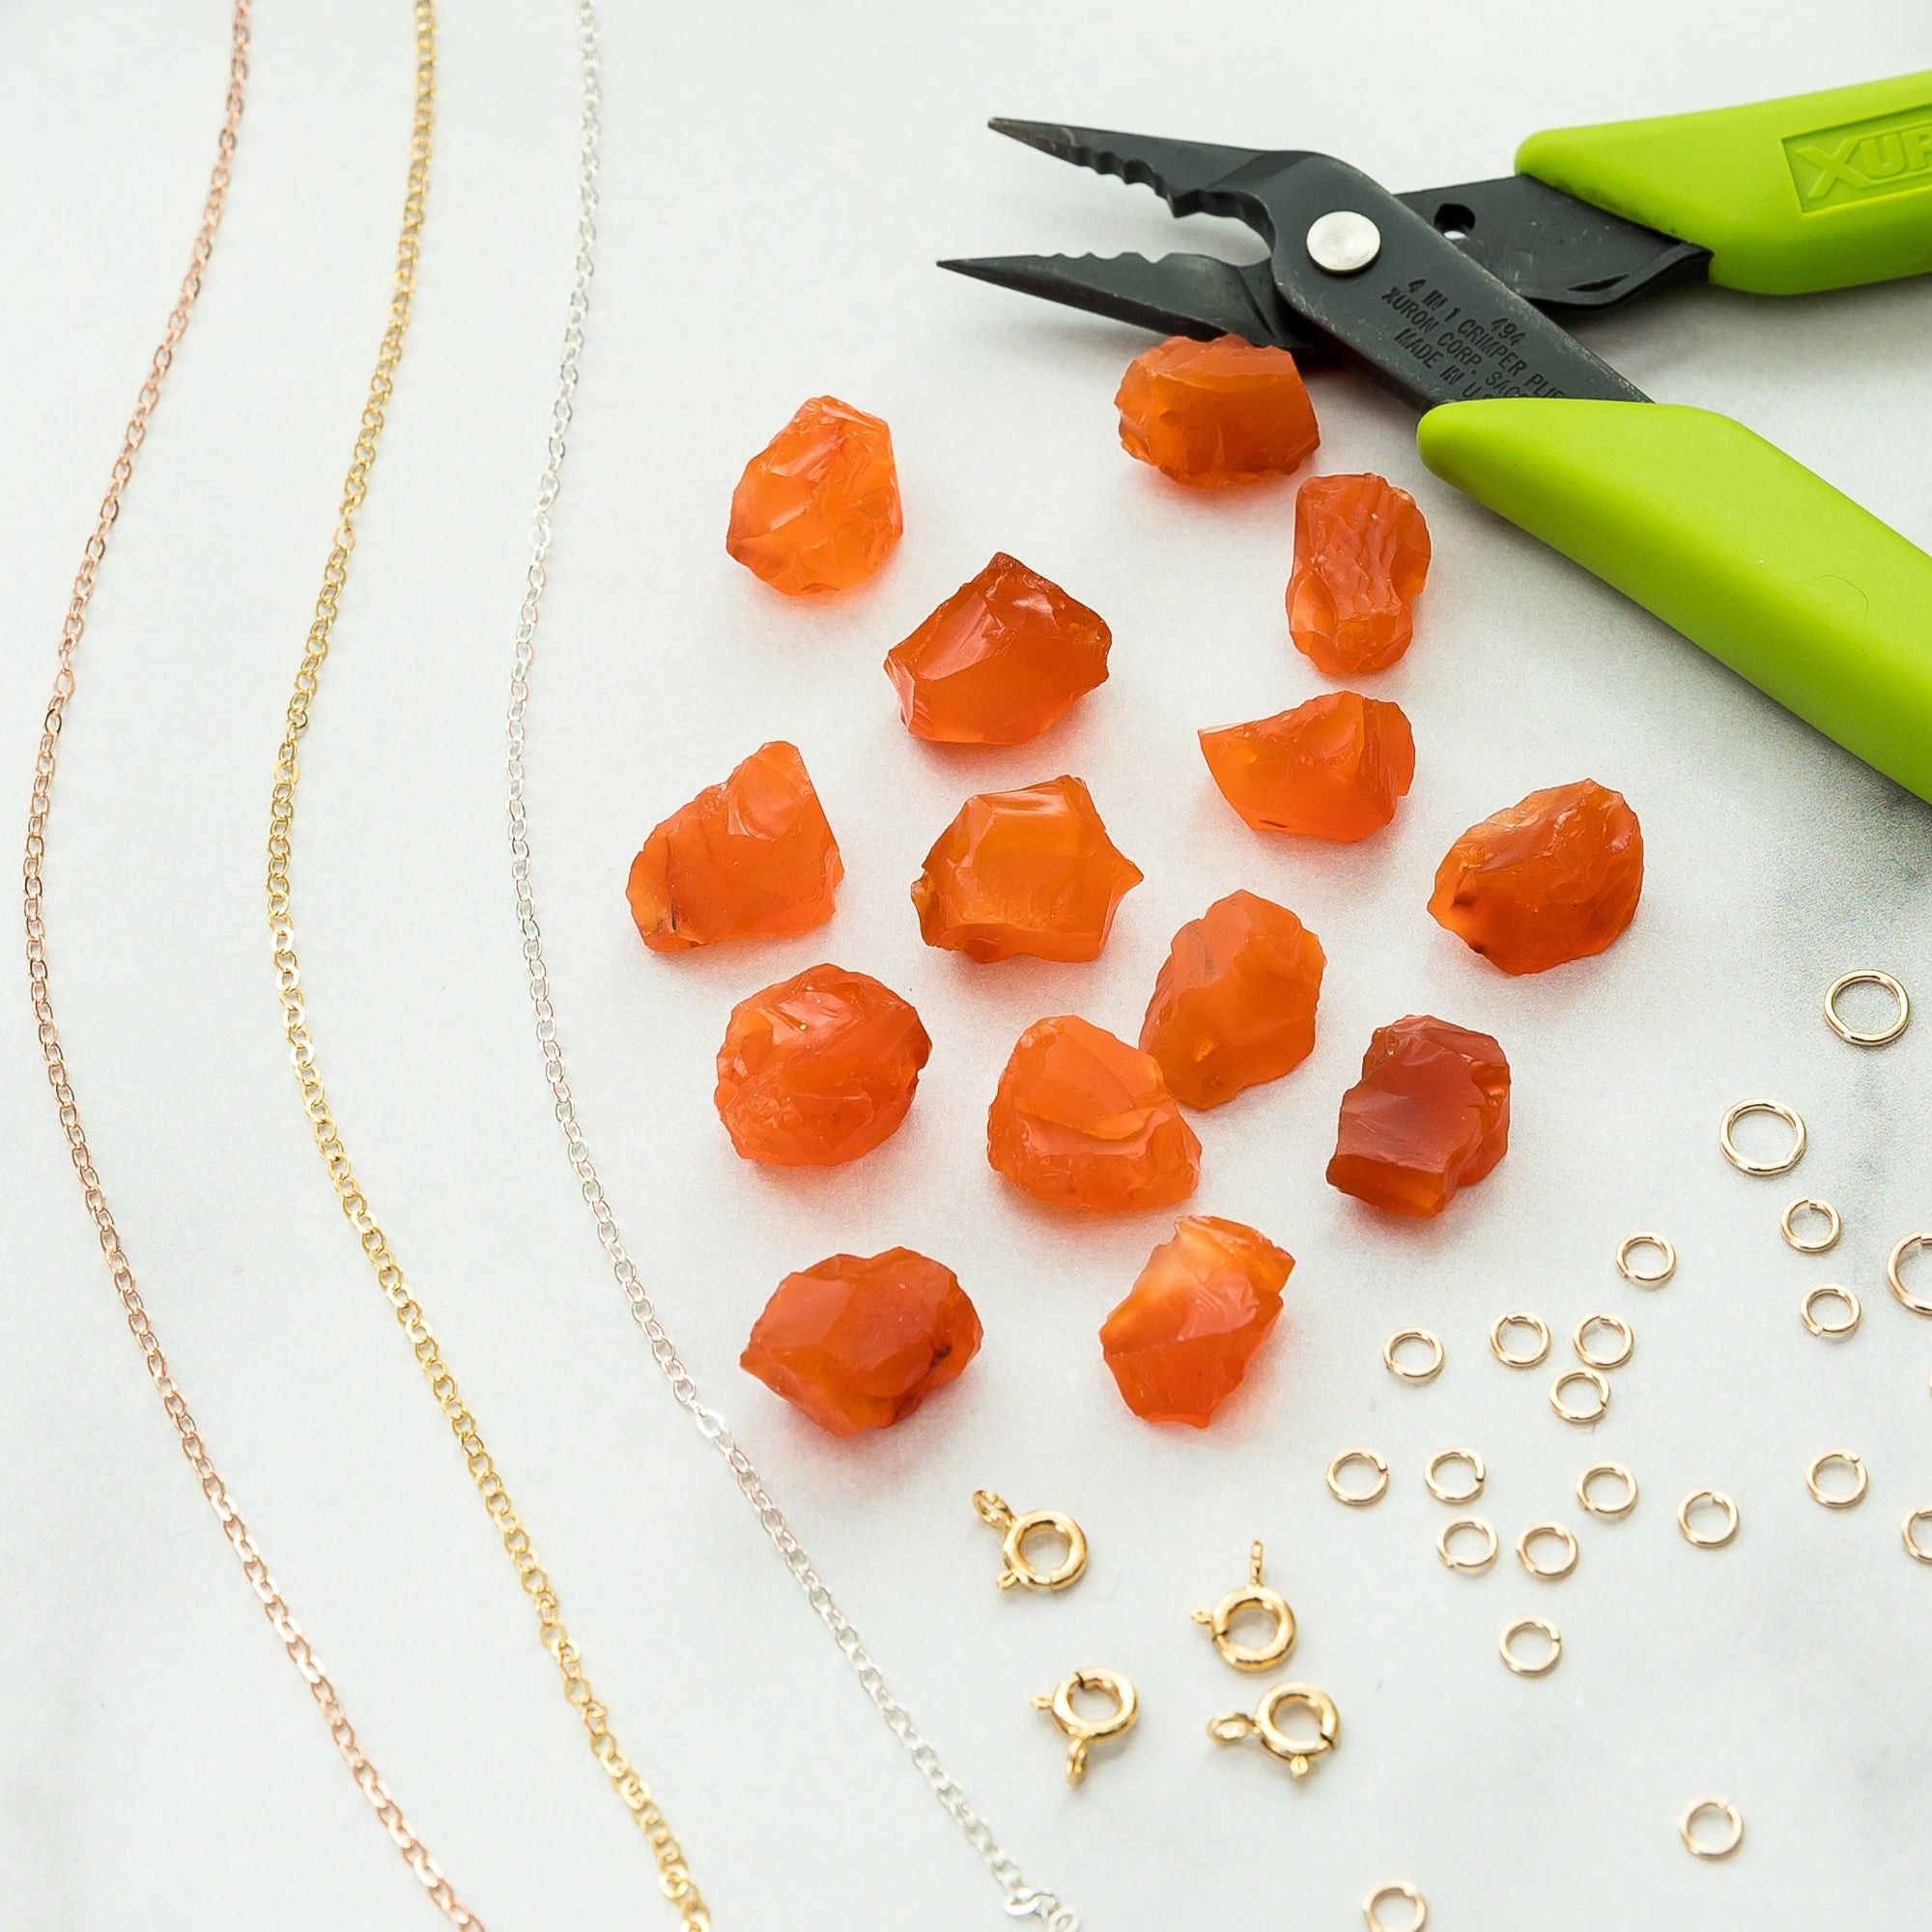 Gold Dipped Raw Carnelian Gemstone Necklace